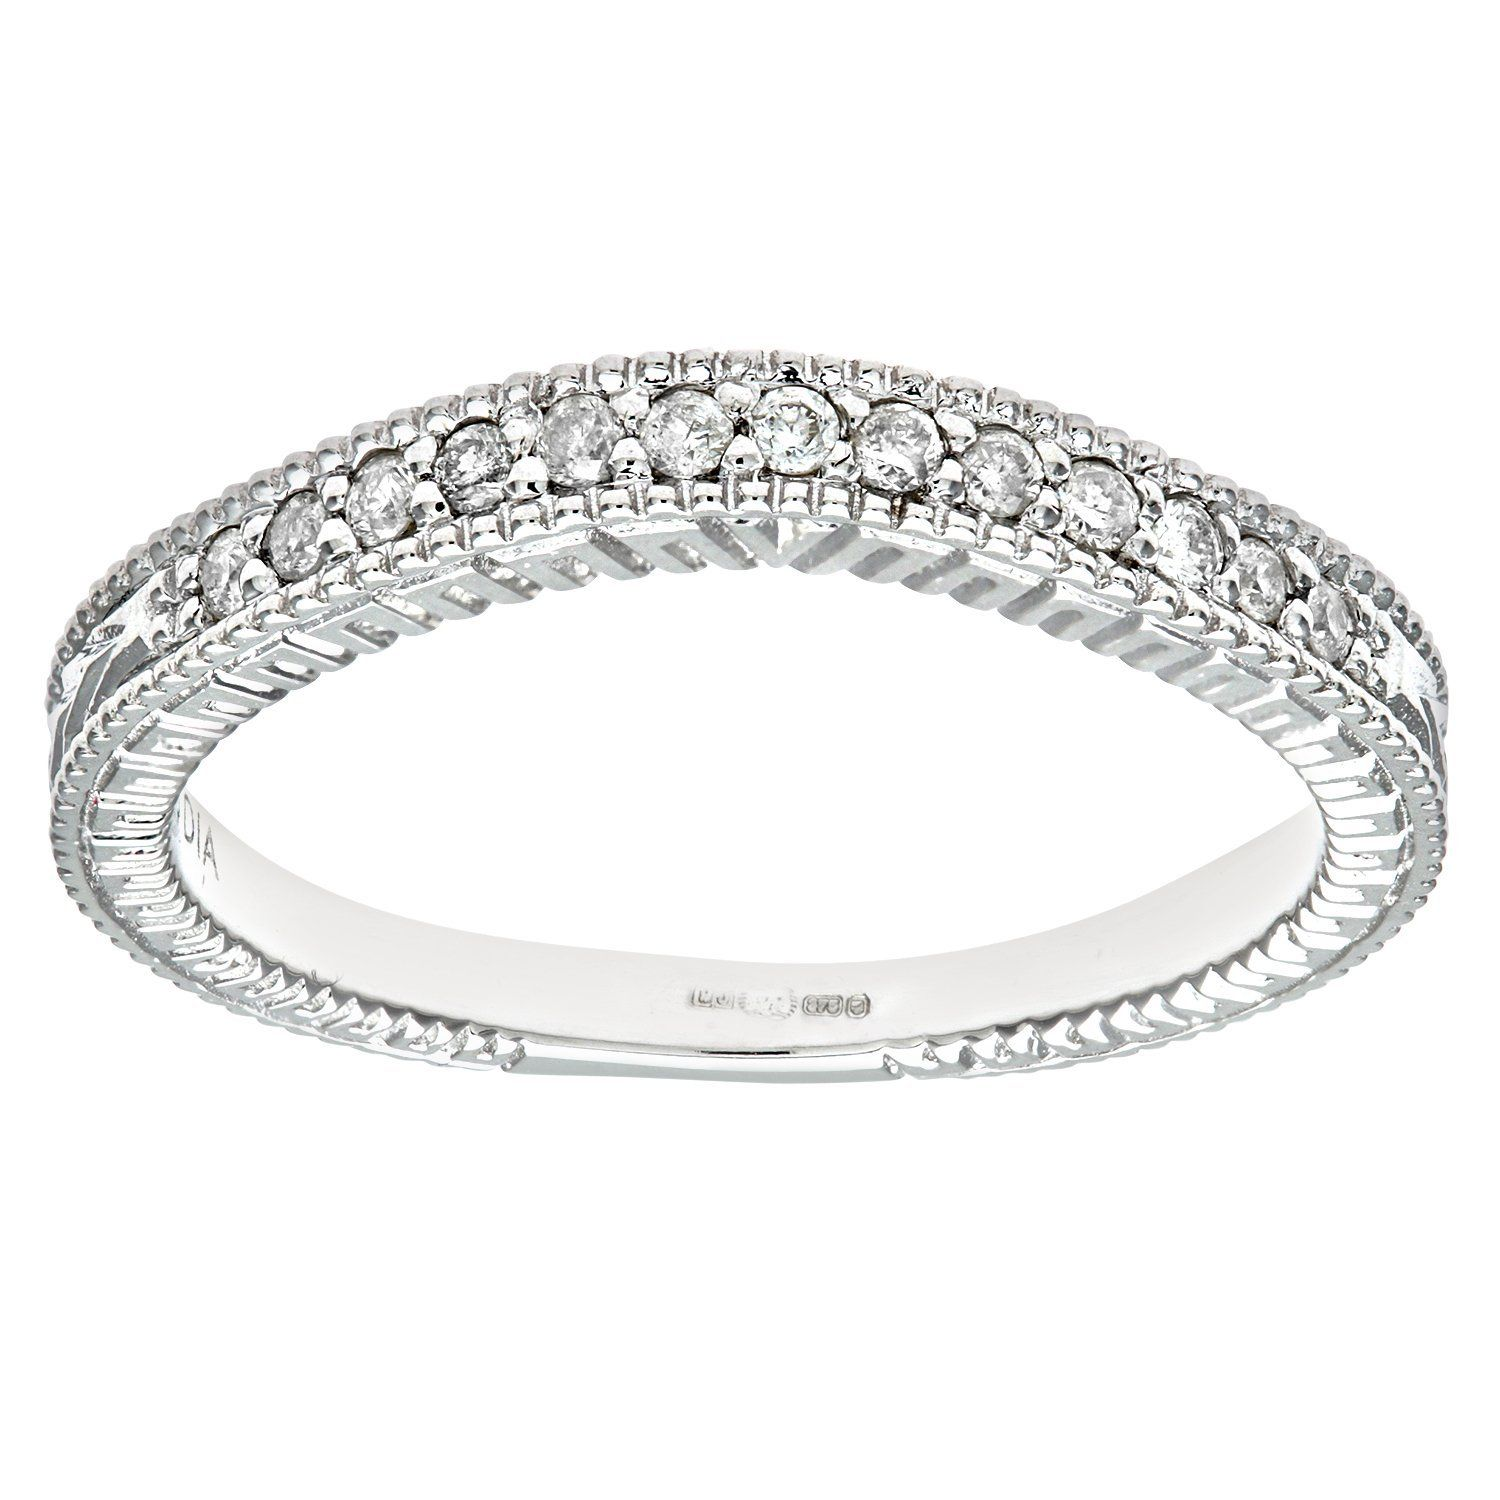 Naava Women's 9 ct White Gold Round Brilliant Cut 0.25 ct Diamond Fancy Eternity Ring 9xWF8tp